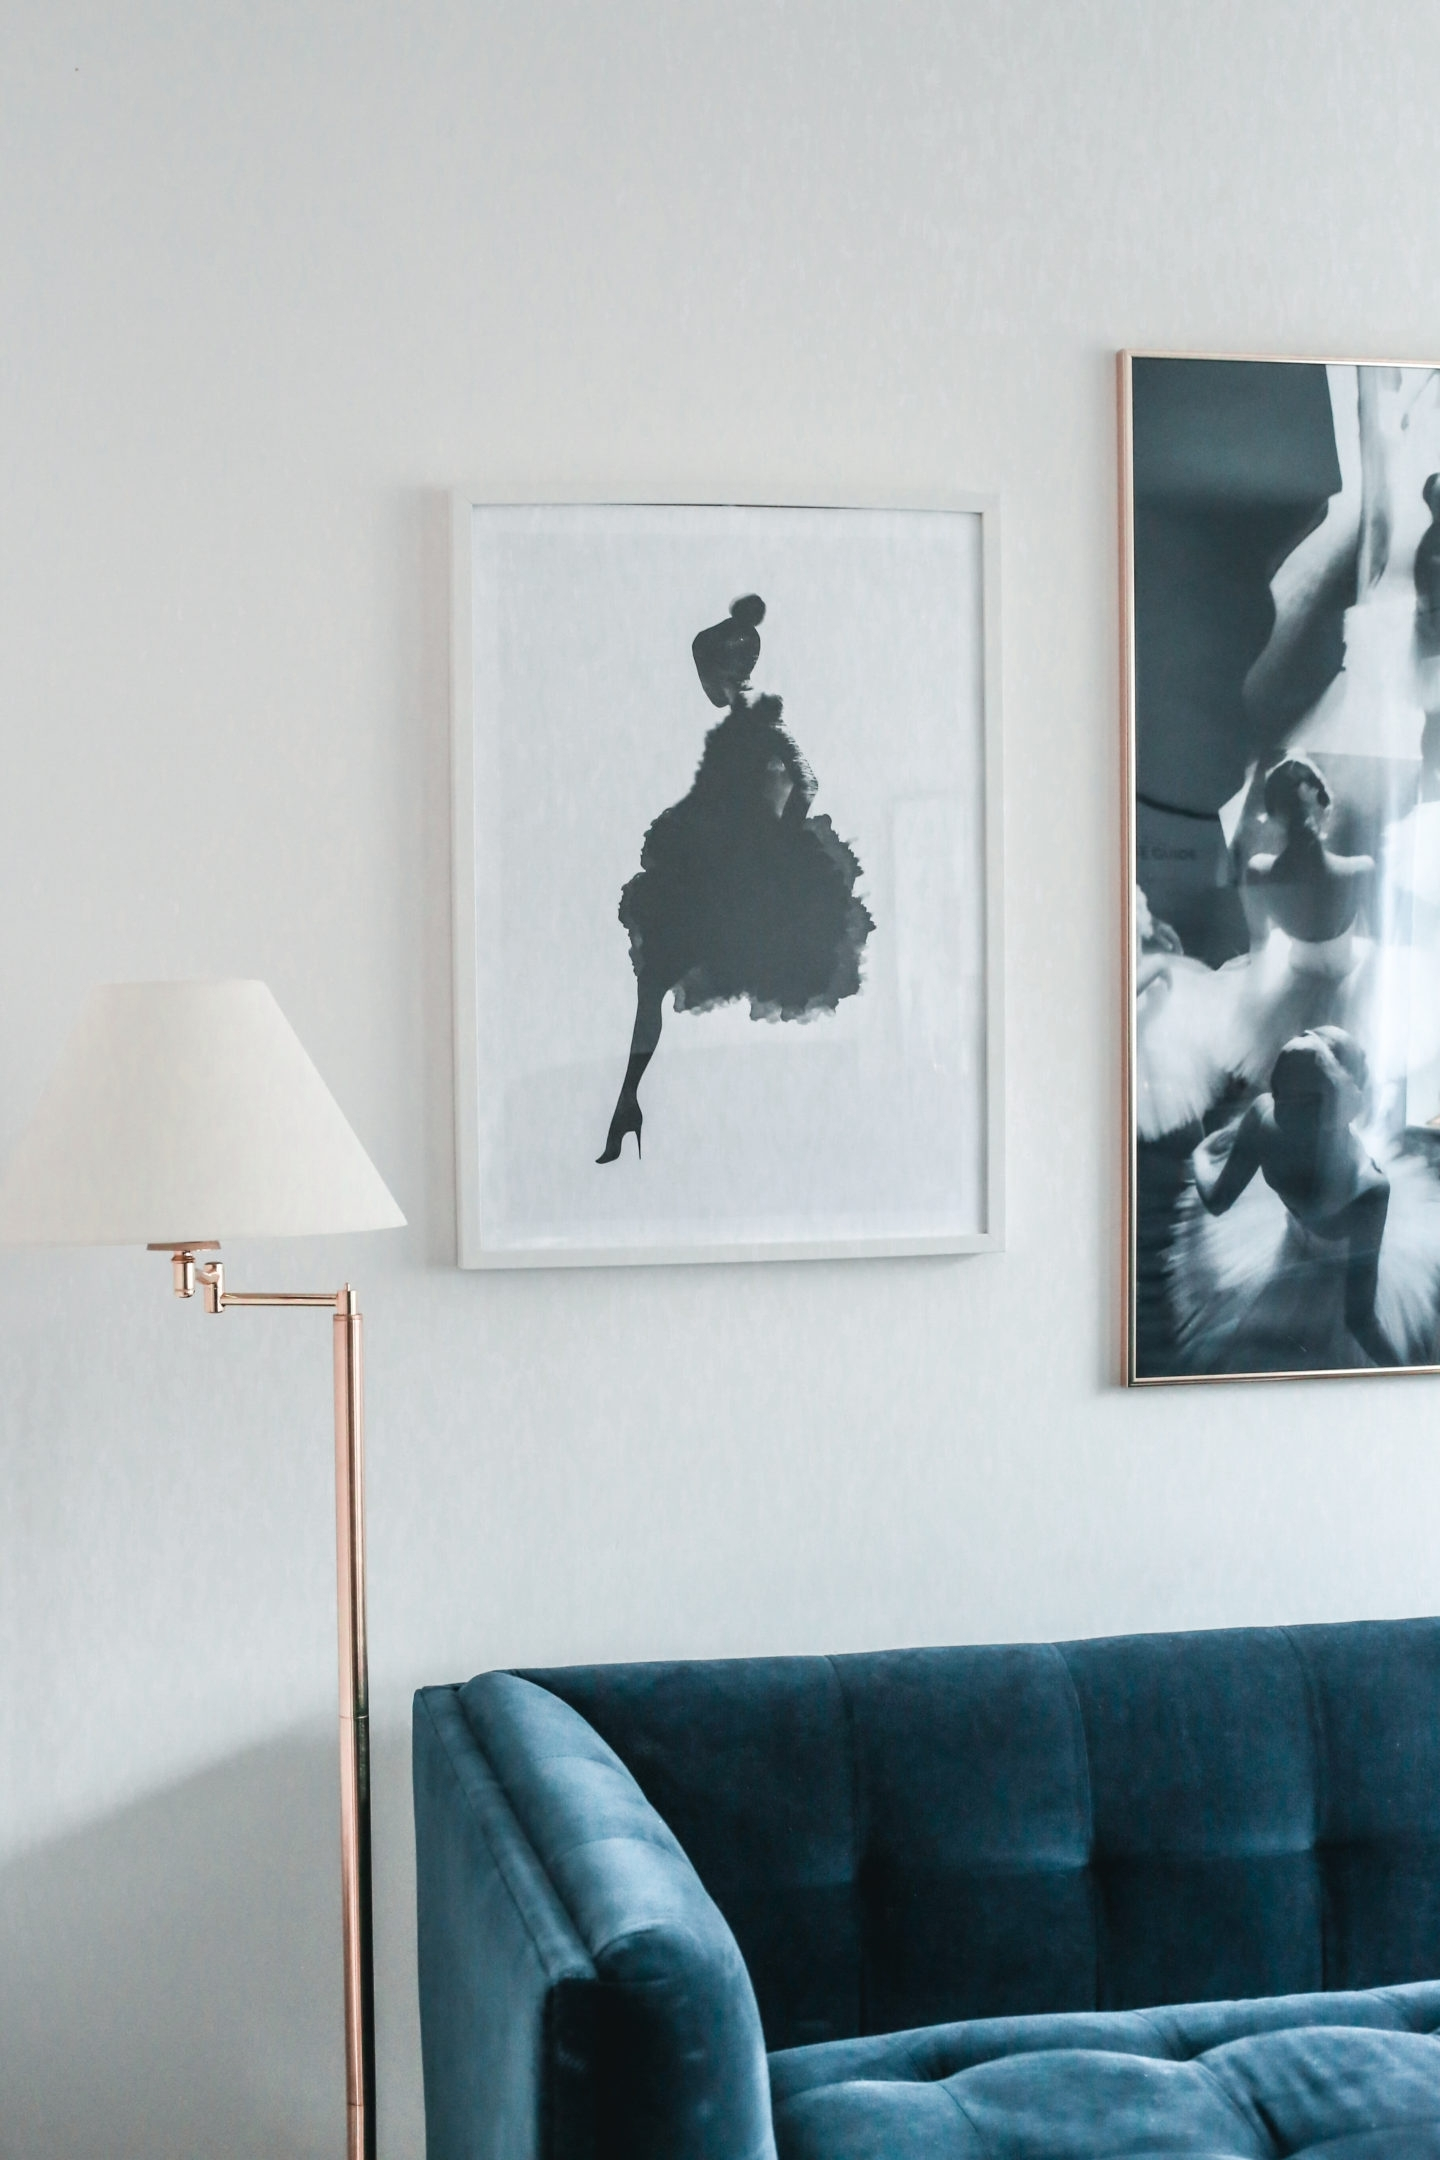 Affordable Wall Art With Regard To Fashionable Affordable Wall Art You'll Love From Desenio – Launeden (View 17 of 20)